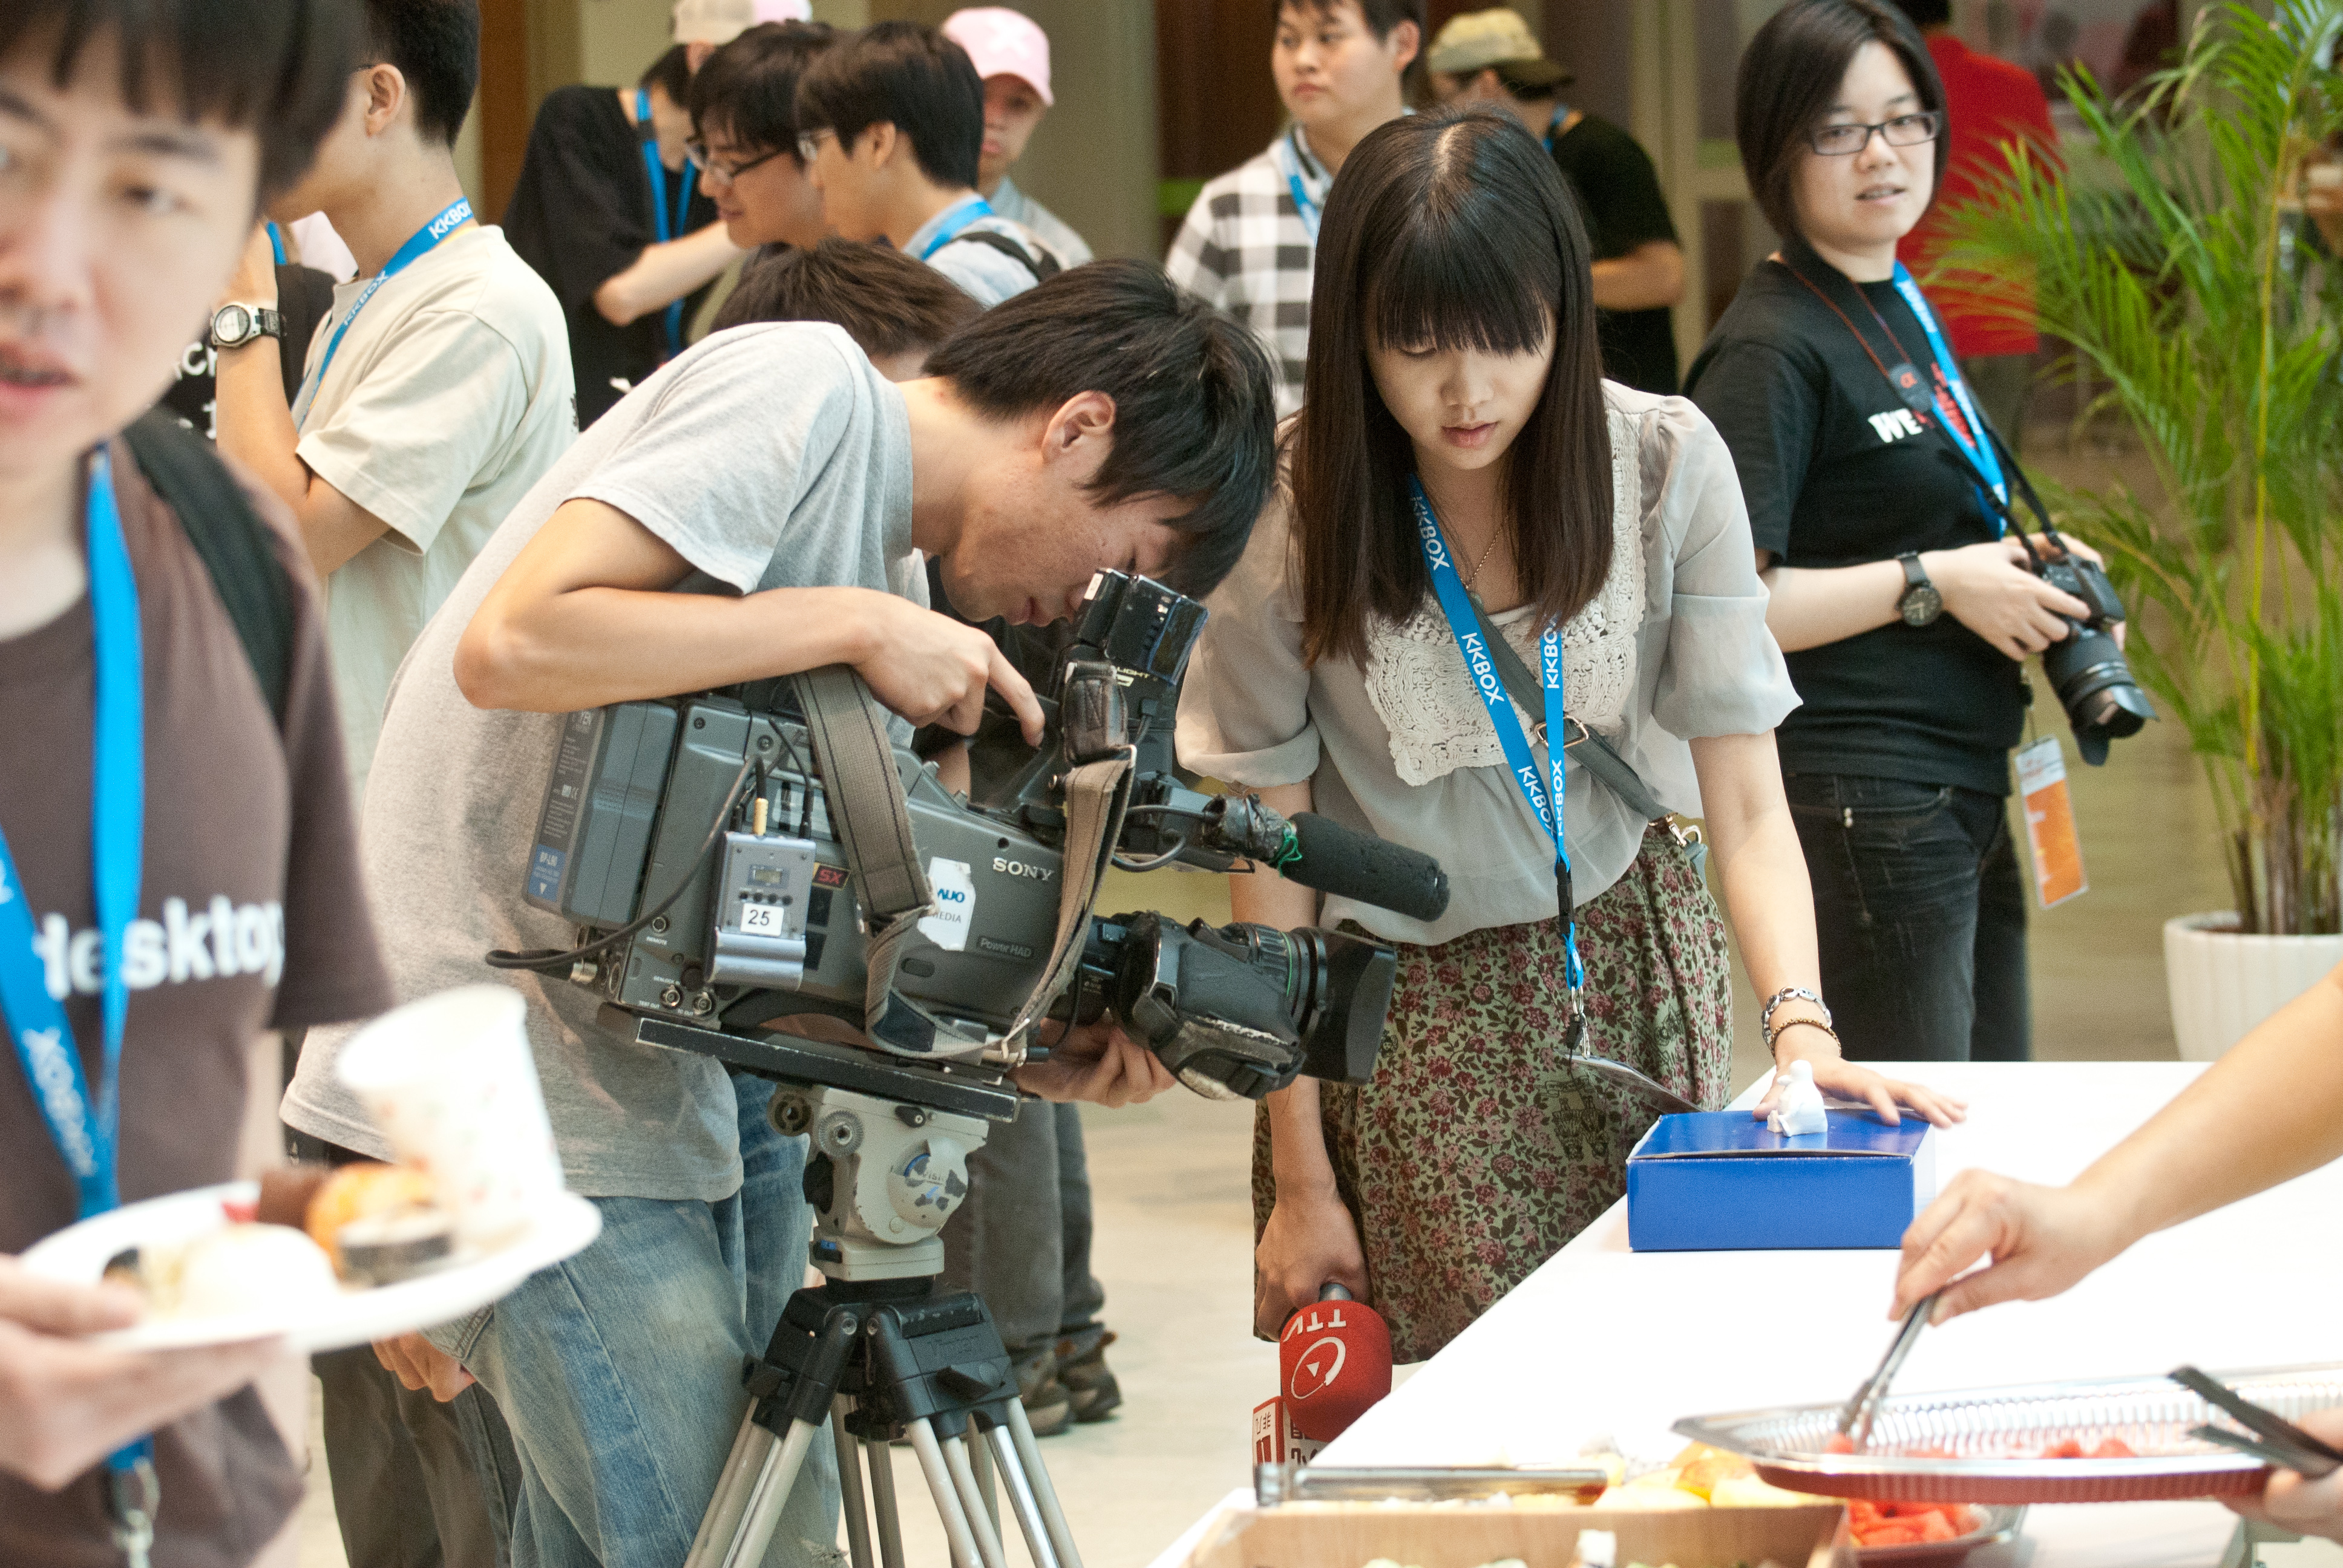 A cameraman looks down into a camera which is pointing at a small statue on a blue box. A reporter looks at the statue as if talking about it.